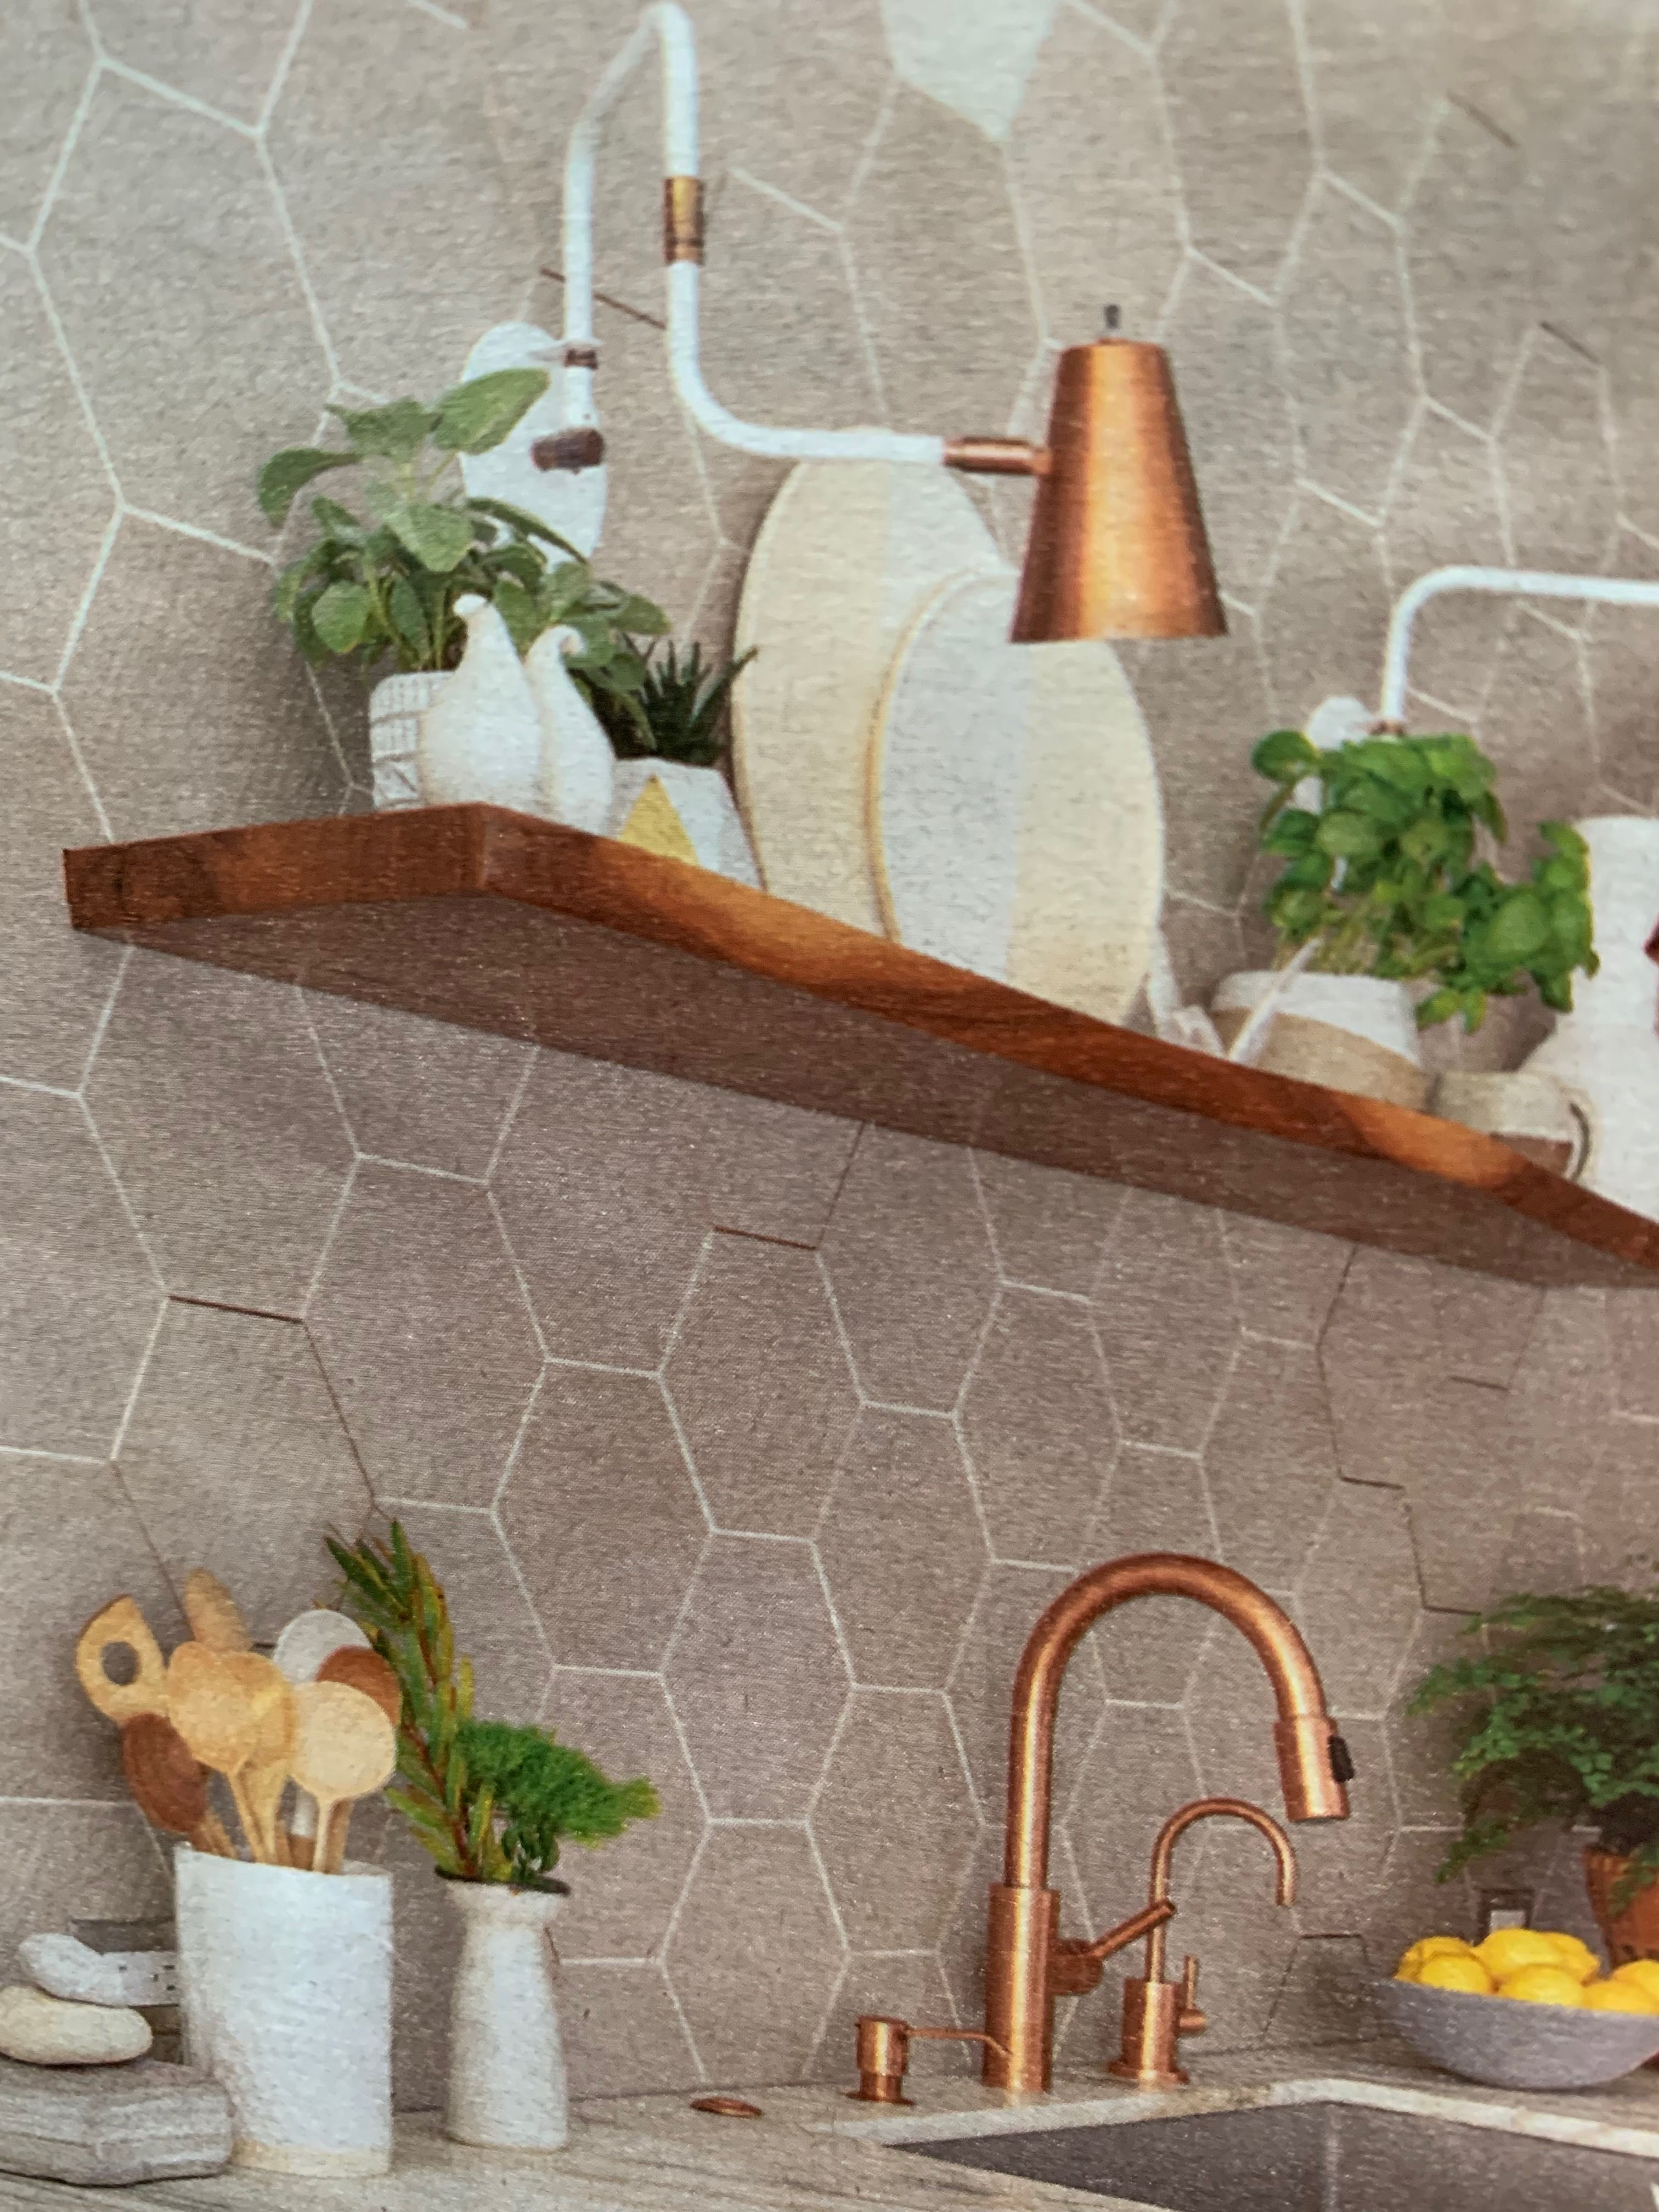 Wall Tile With Copper Tile Edging Credit Bh G Mag Copper Tiles Tile Edge Wall Tiles